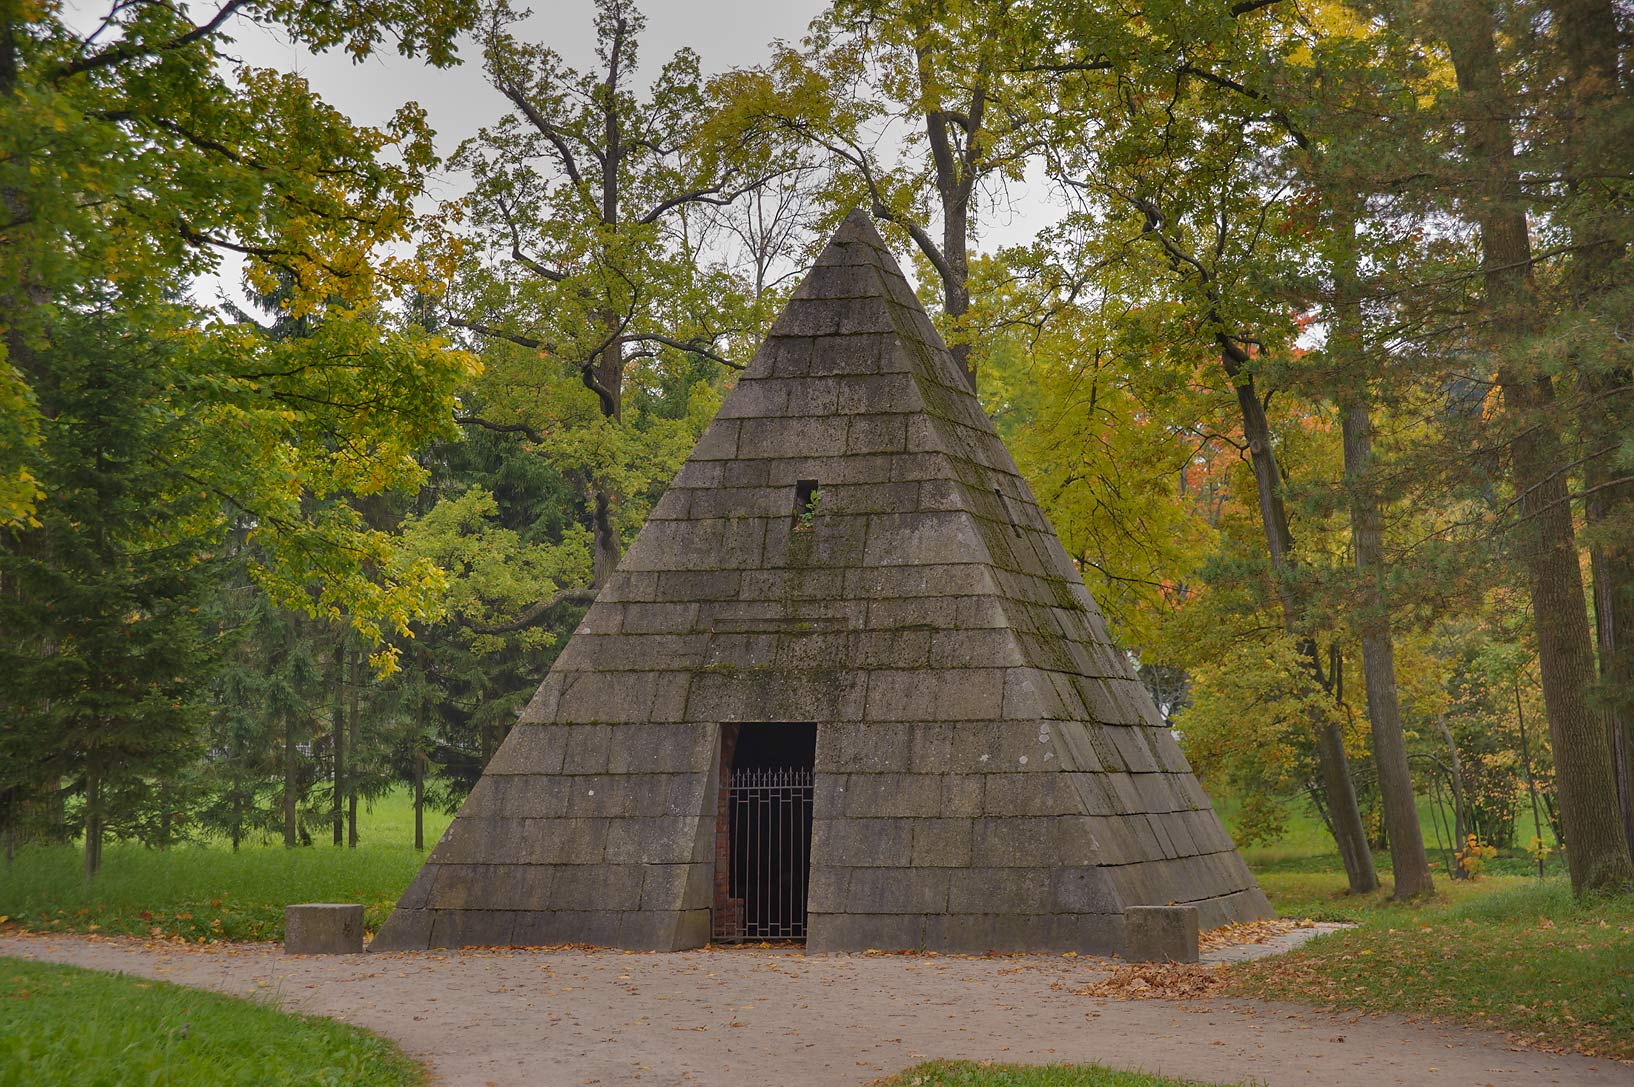 Pyramid (a tomb for greyhounds of Catherine II...Selo) near St.Petersburg, Russia